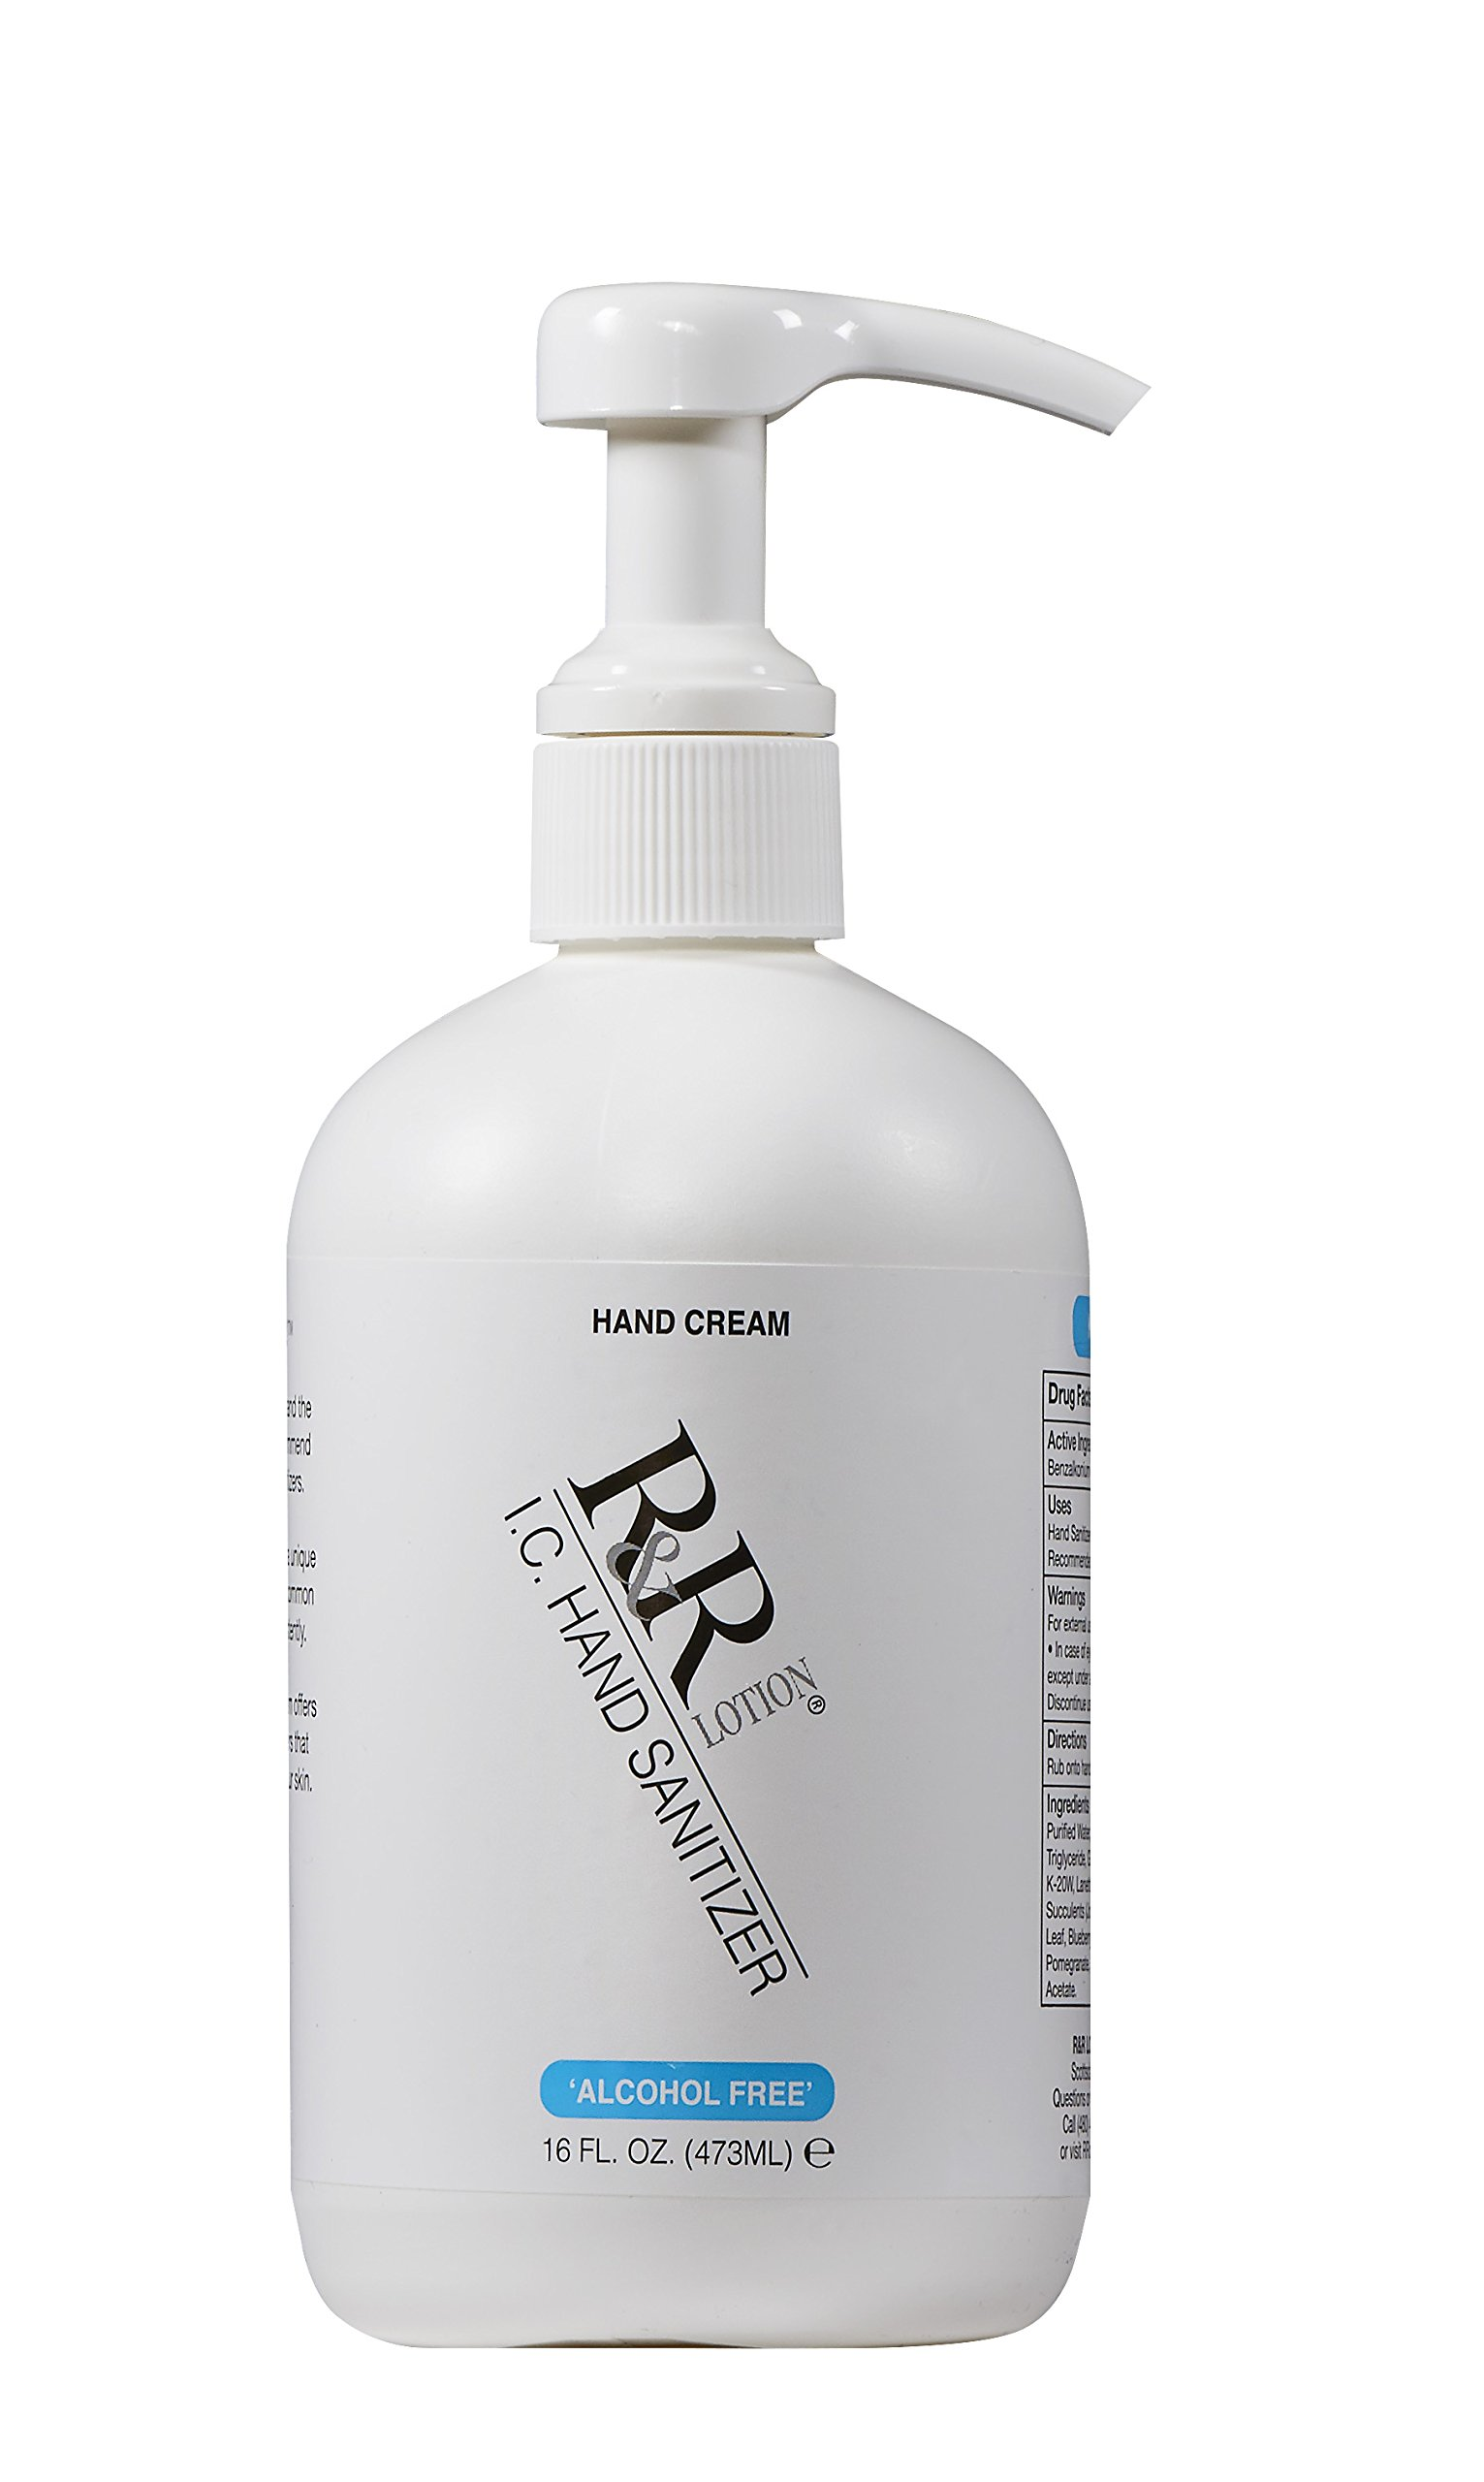 Hand Sanitizer Alcohol-Free Re-Moisturizing Cream Using BZK to Kill 99.99% of Germs Persistently. Re-moisturizes Using Sunflower & Shea Butter, 14 Botanicals and Succulents Along with VIT. 16oz by R&R Lotion